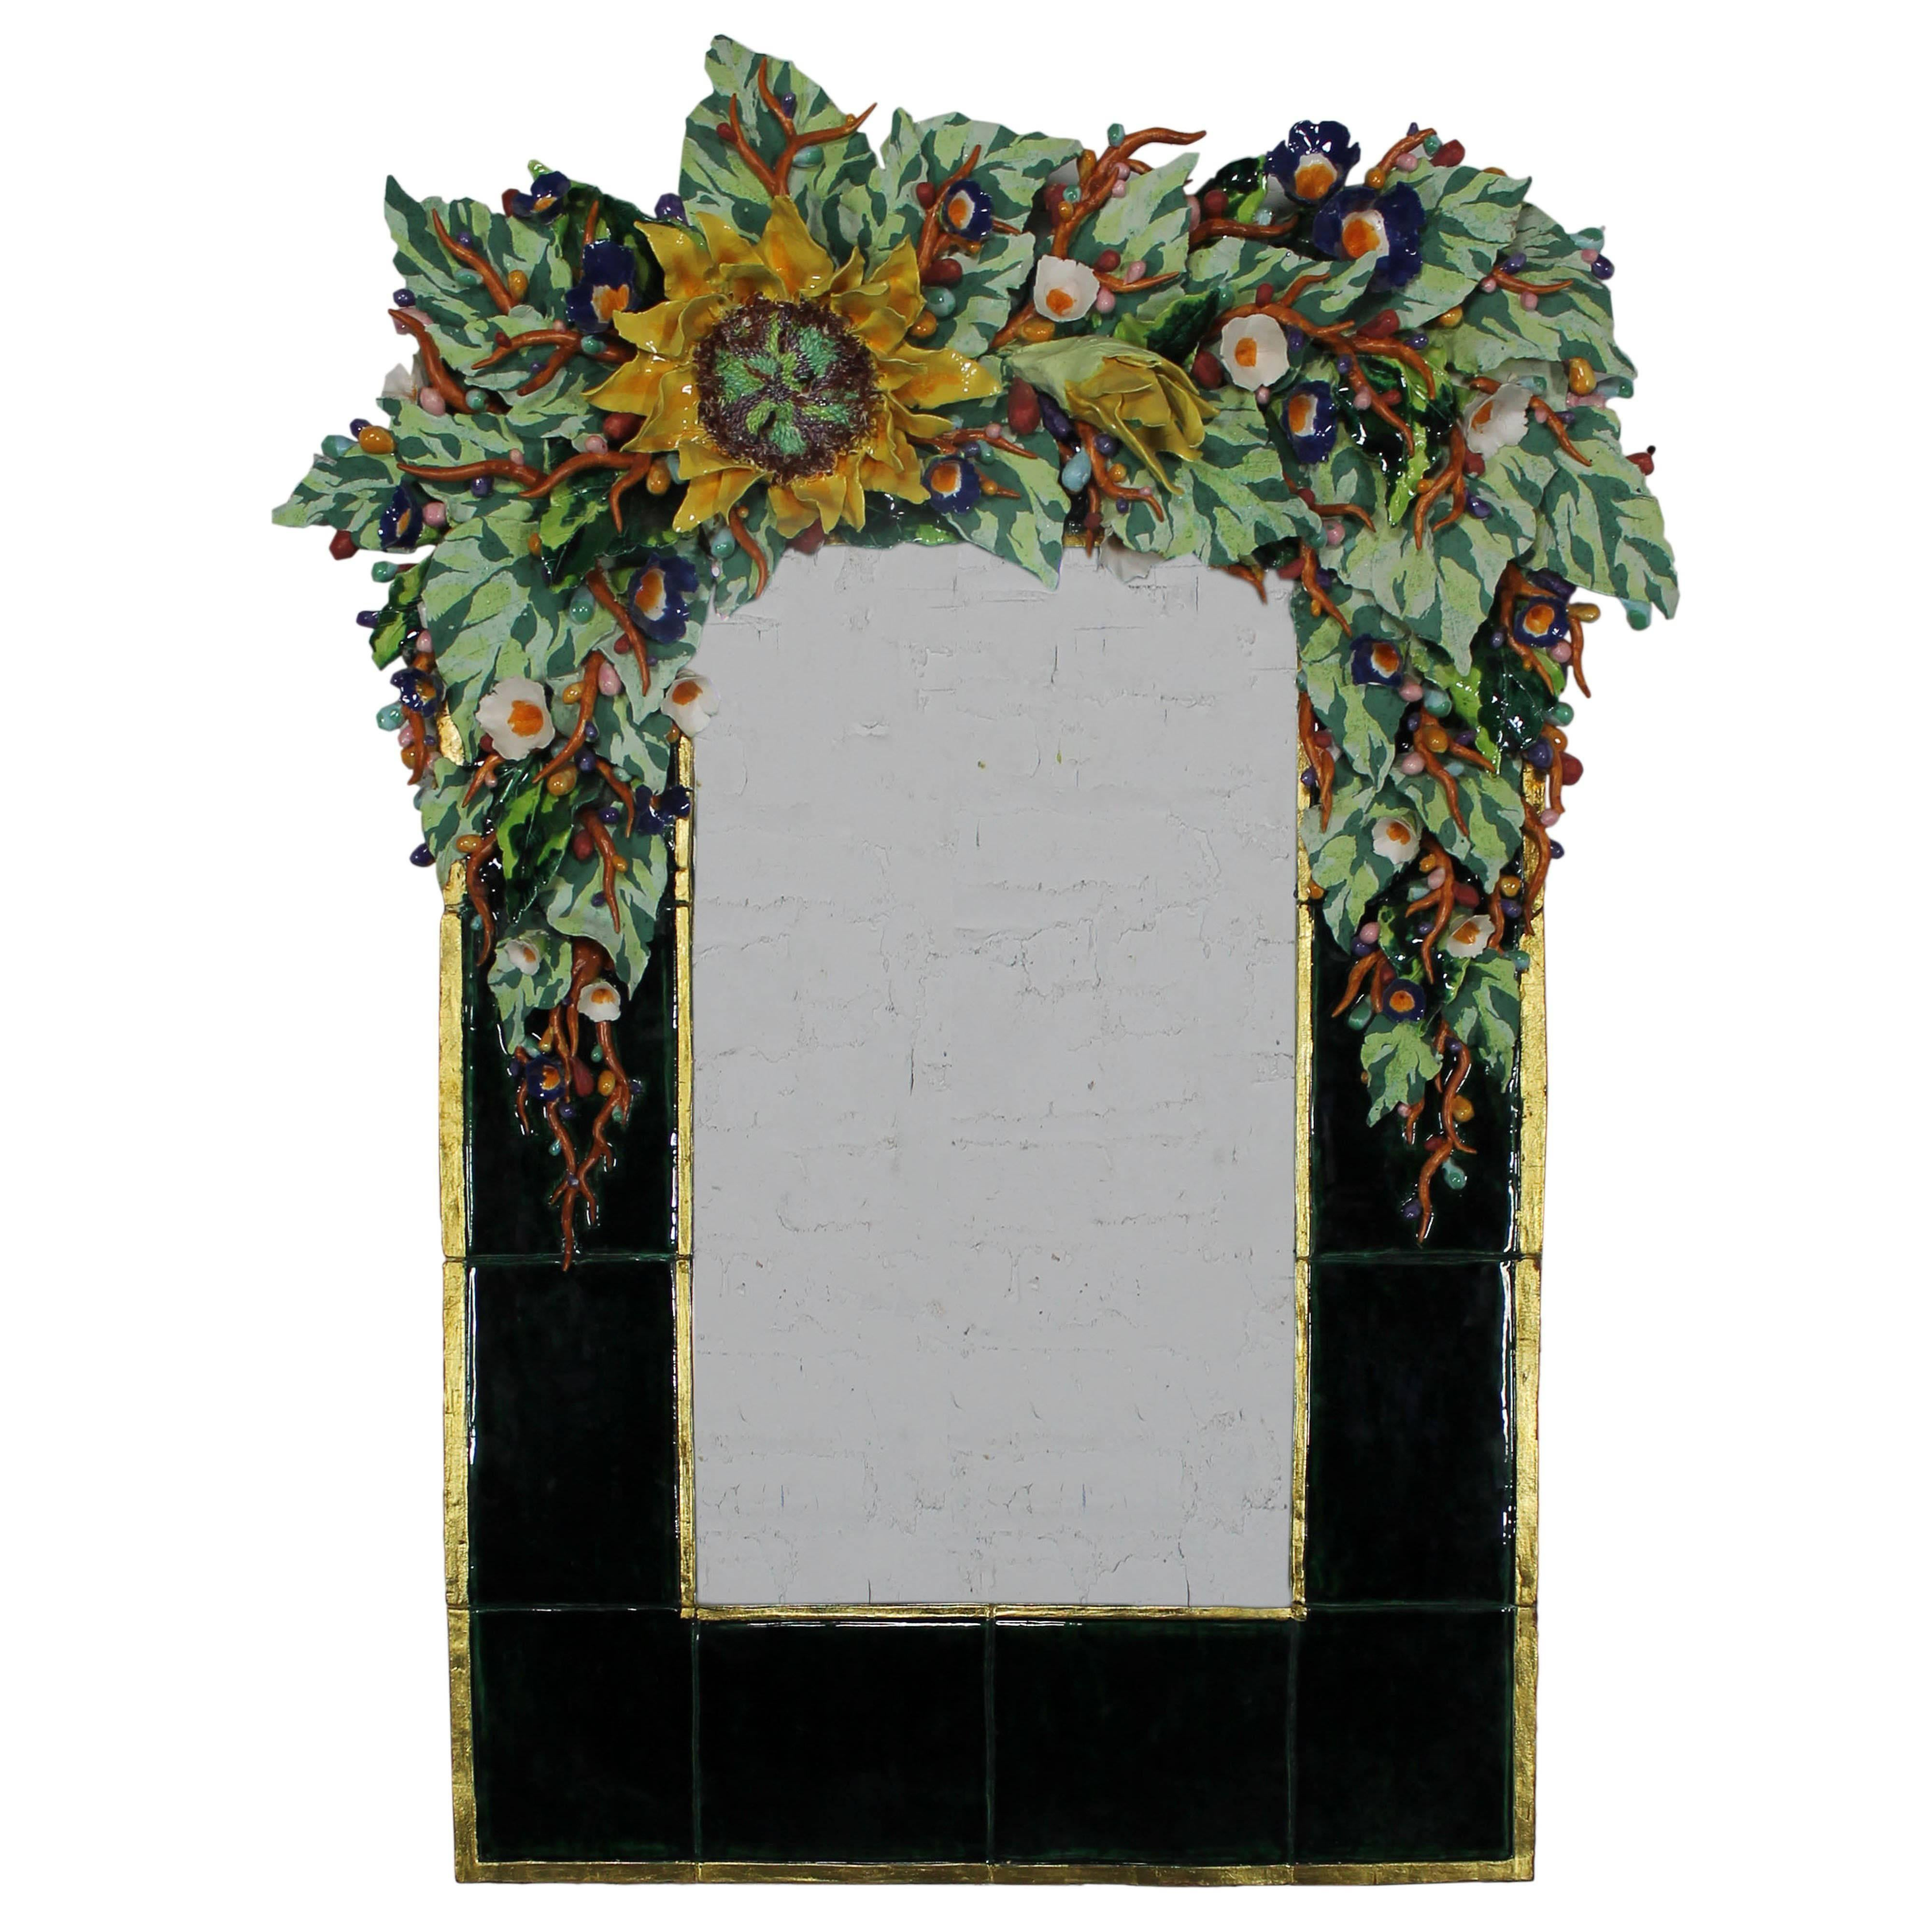 Mirror Inc Topeka Ks Large Contemporary George Alexander Floral Ceramic Mirror